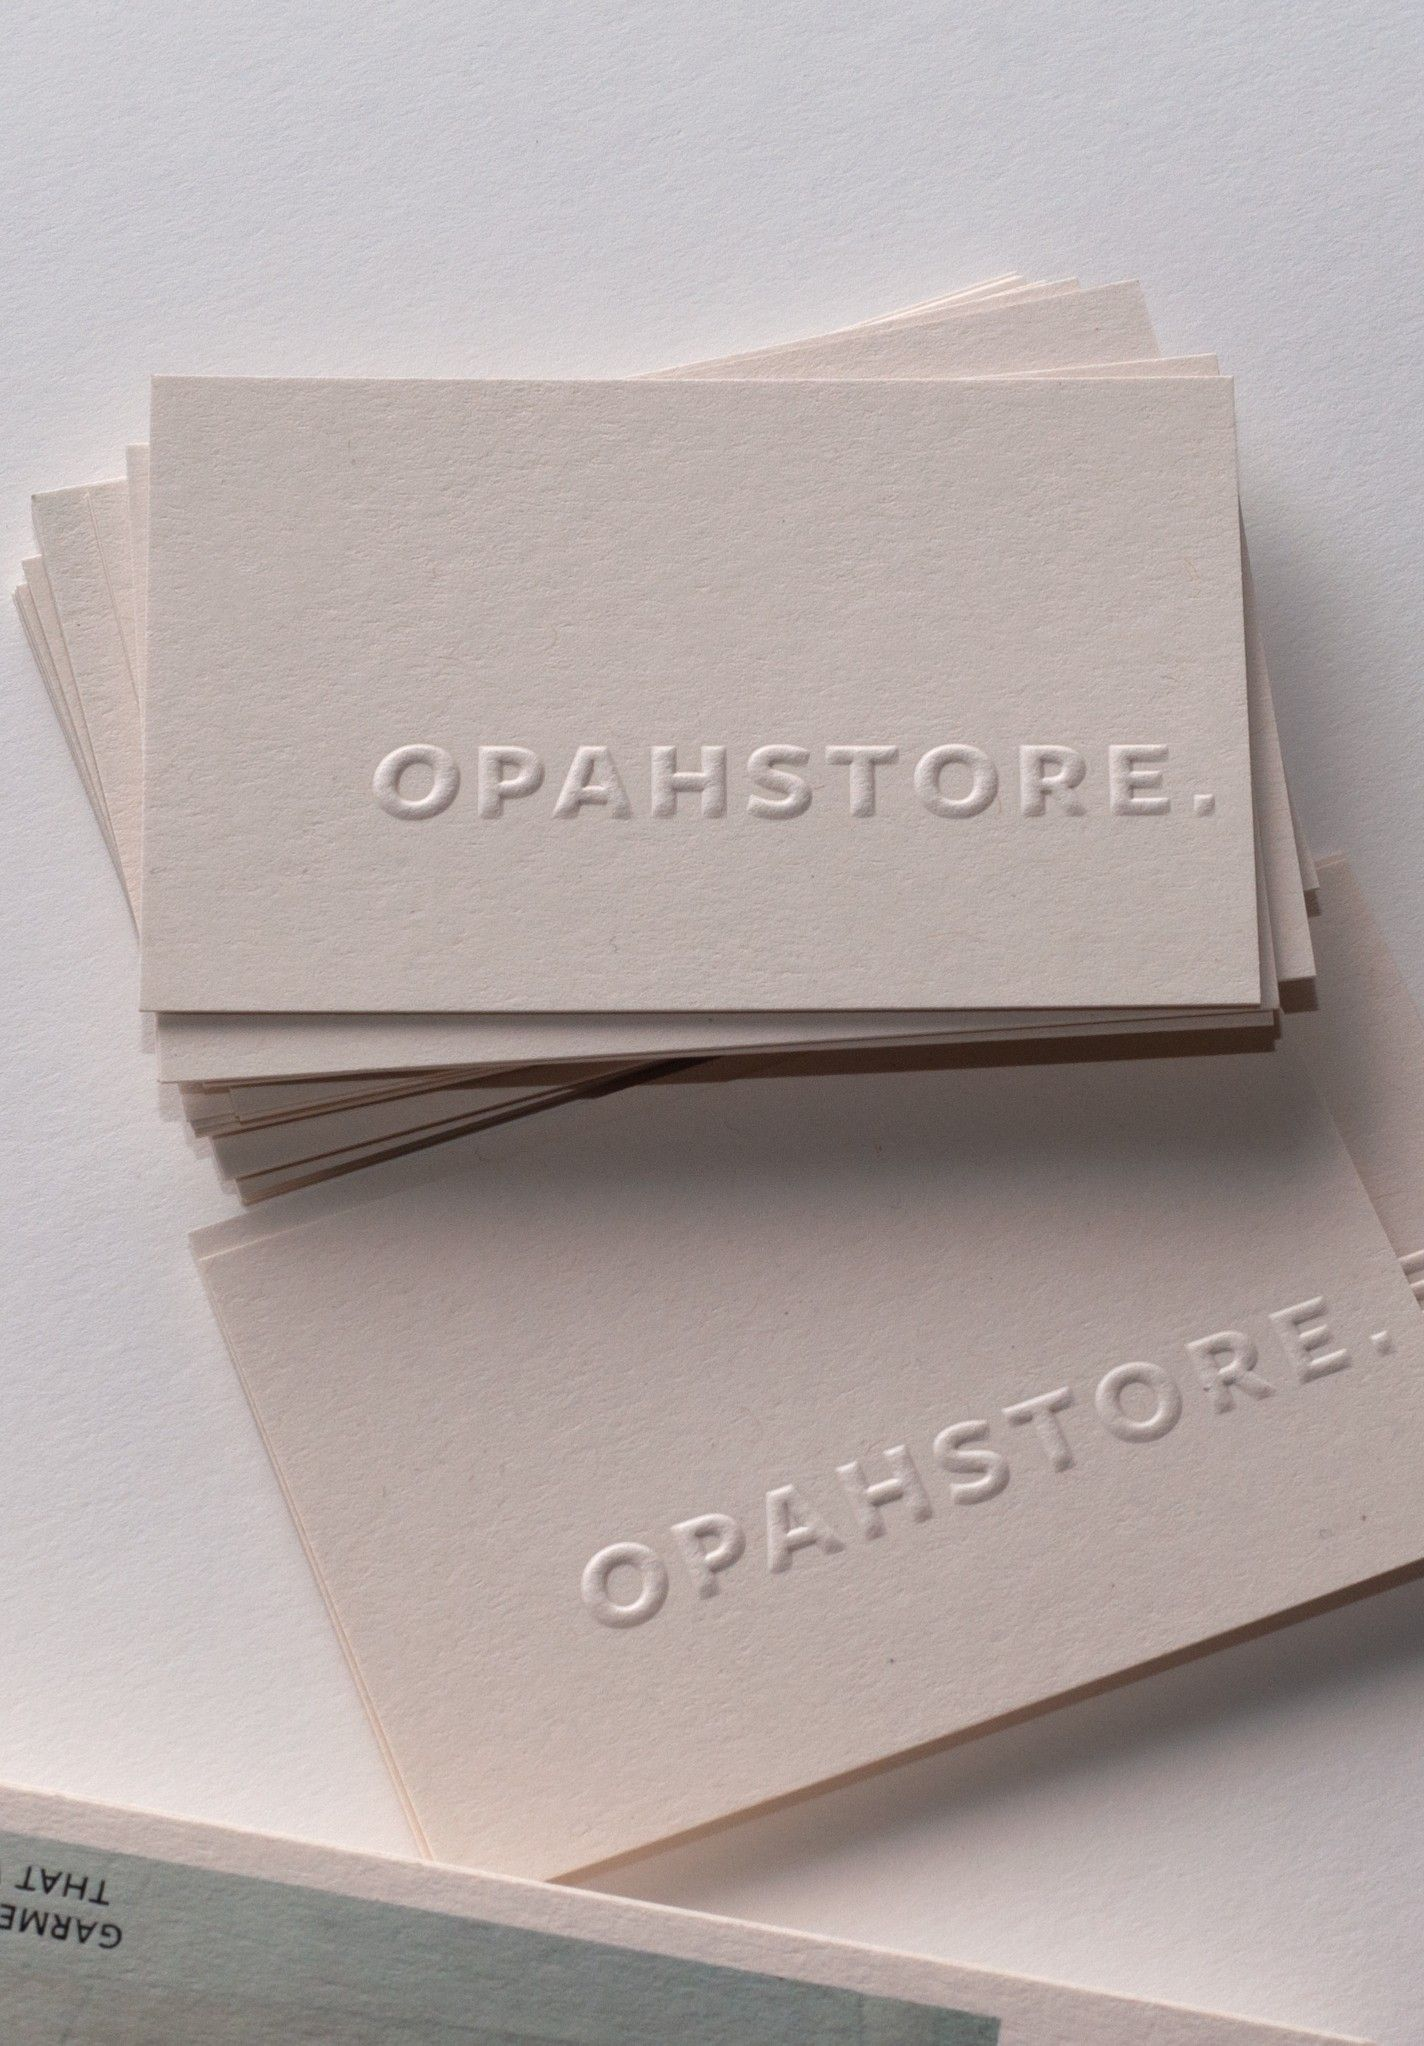 Blind Embossed Business Cards Printed By Jot Paper Co For Opahstore Printing Business Cards Embossed Business Cards Graphic Design Business Card